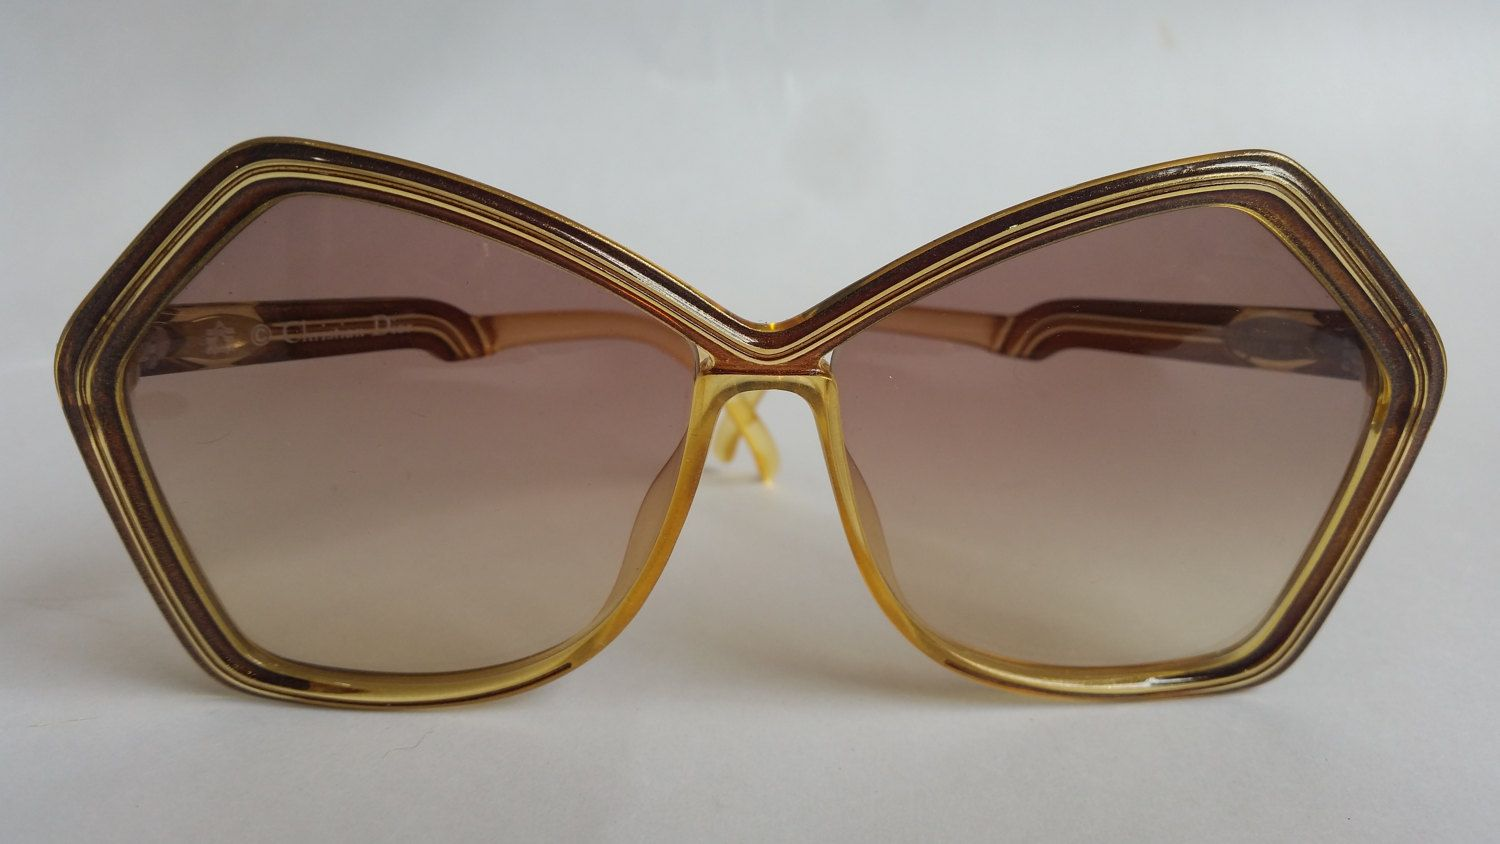 3a0f2668bc010 CHRISTIAN DIOR 2127 10 ~ Original VINTAGE Sunglasses - Mr Specs - Simon  Murray Eyewear Collection – Oversize Angular Design by MrSpecs on Etsy